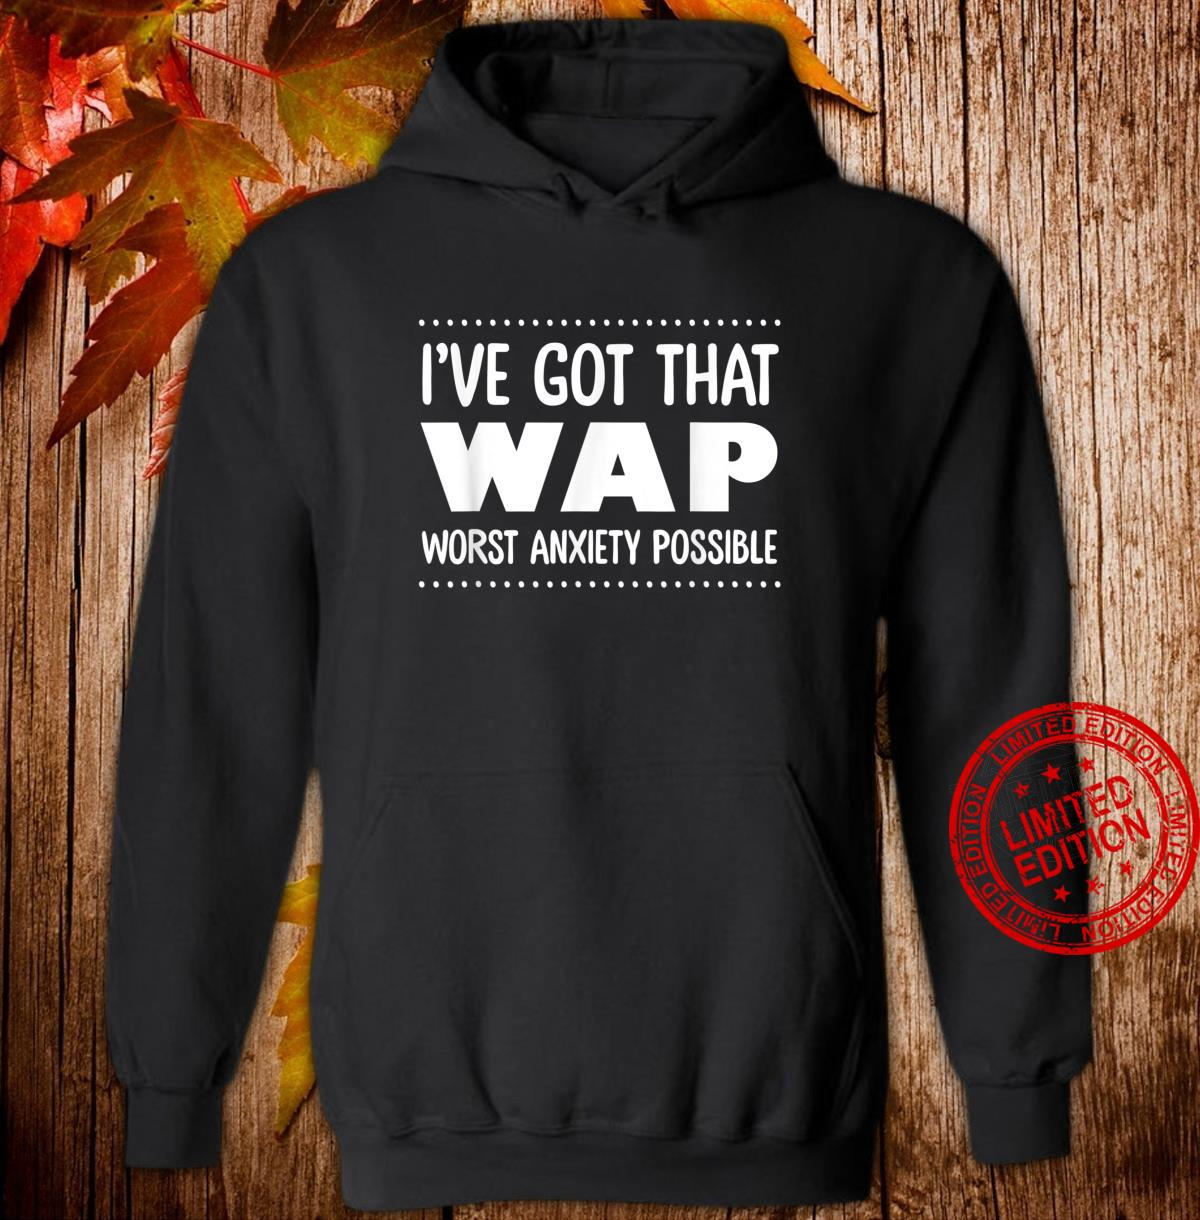 I've Got That WAP Worst Anxiety Possible Saying Shirt hoodie